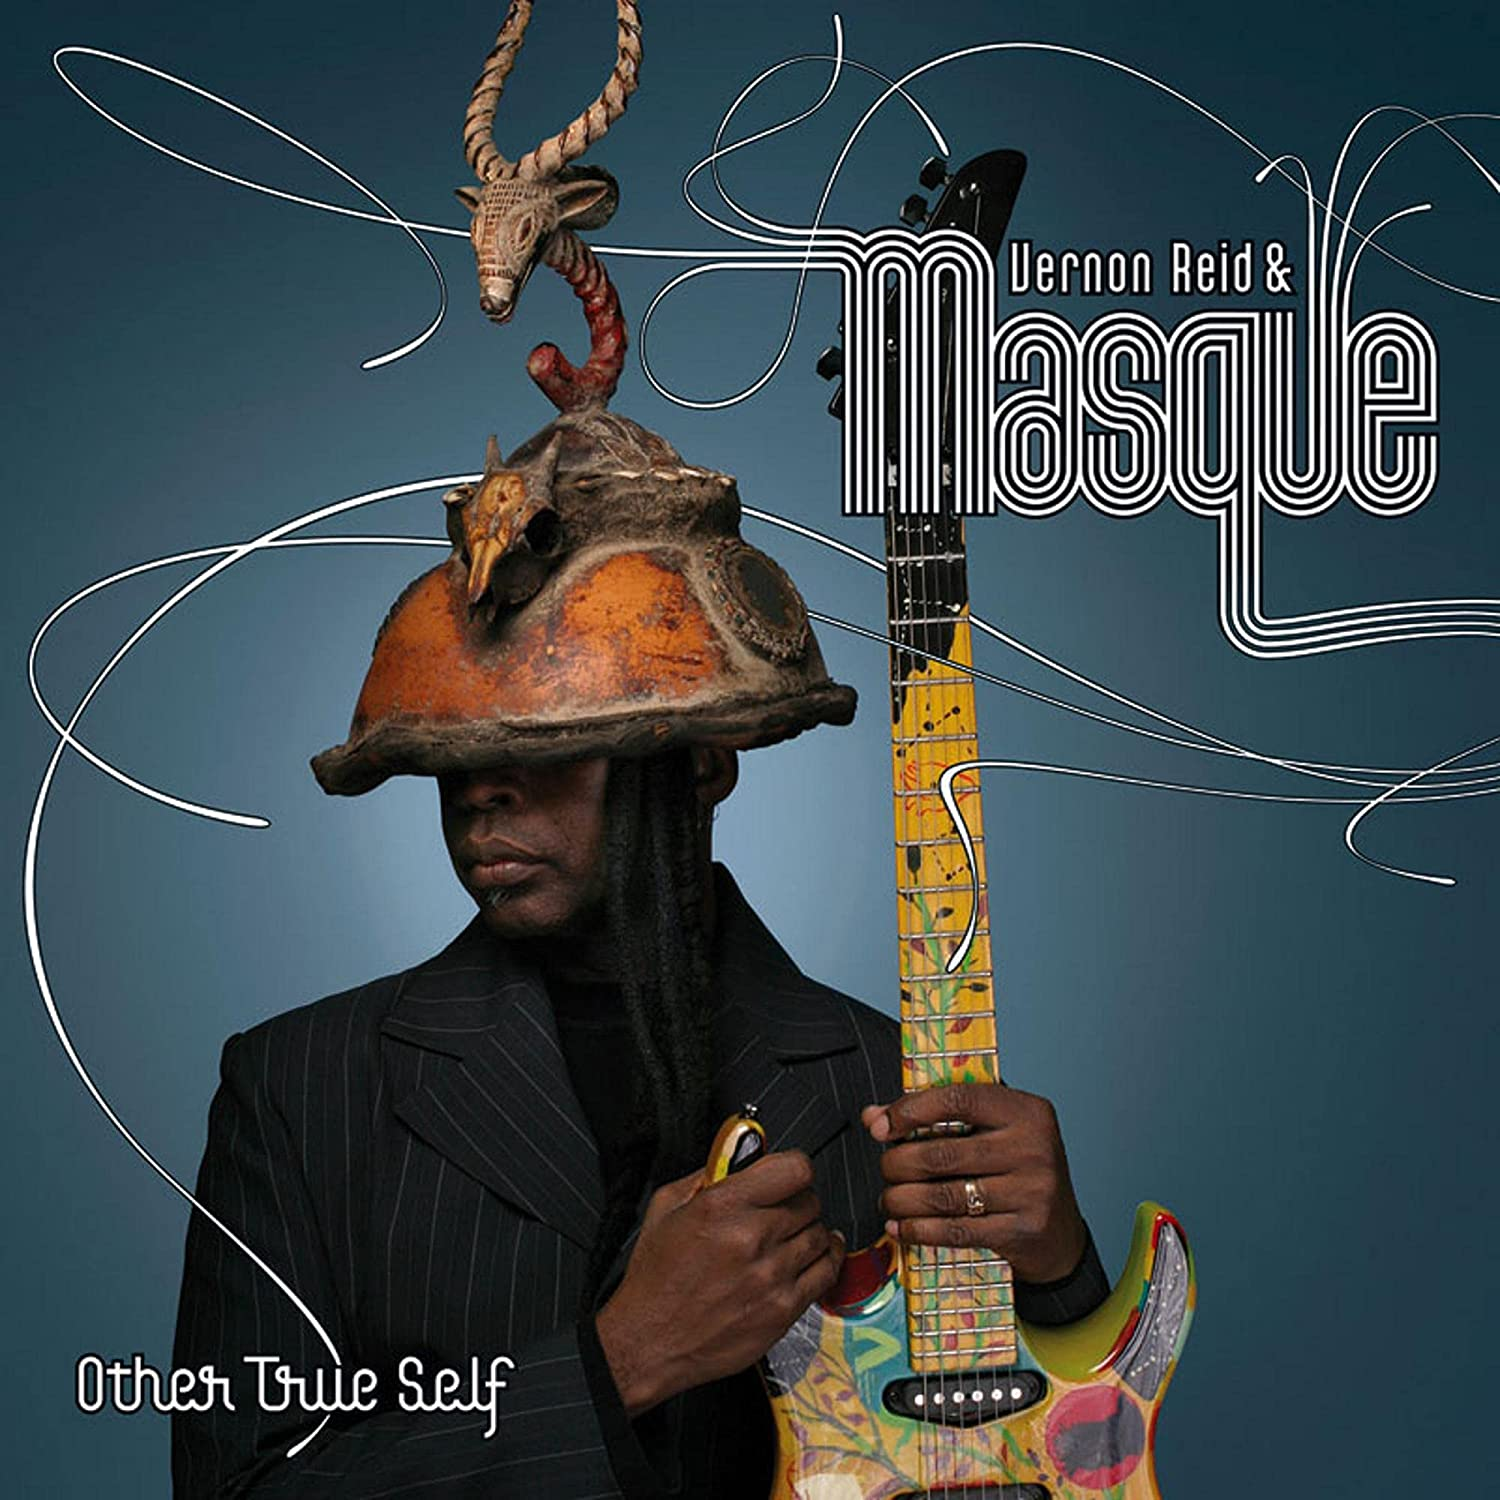 Vernon Reid & Masque, Other True Self